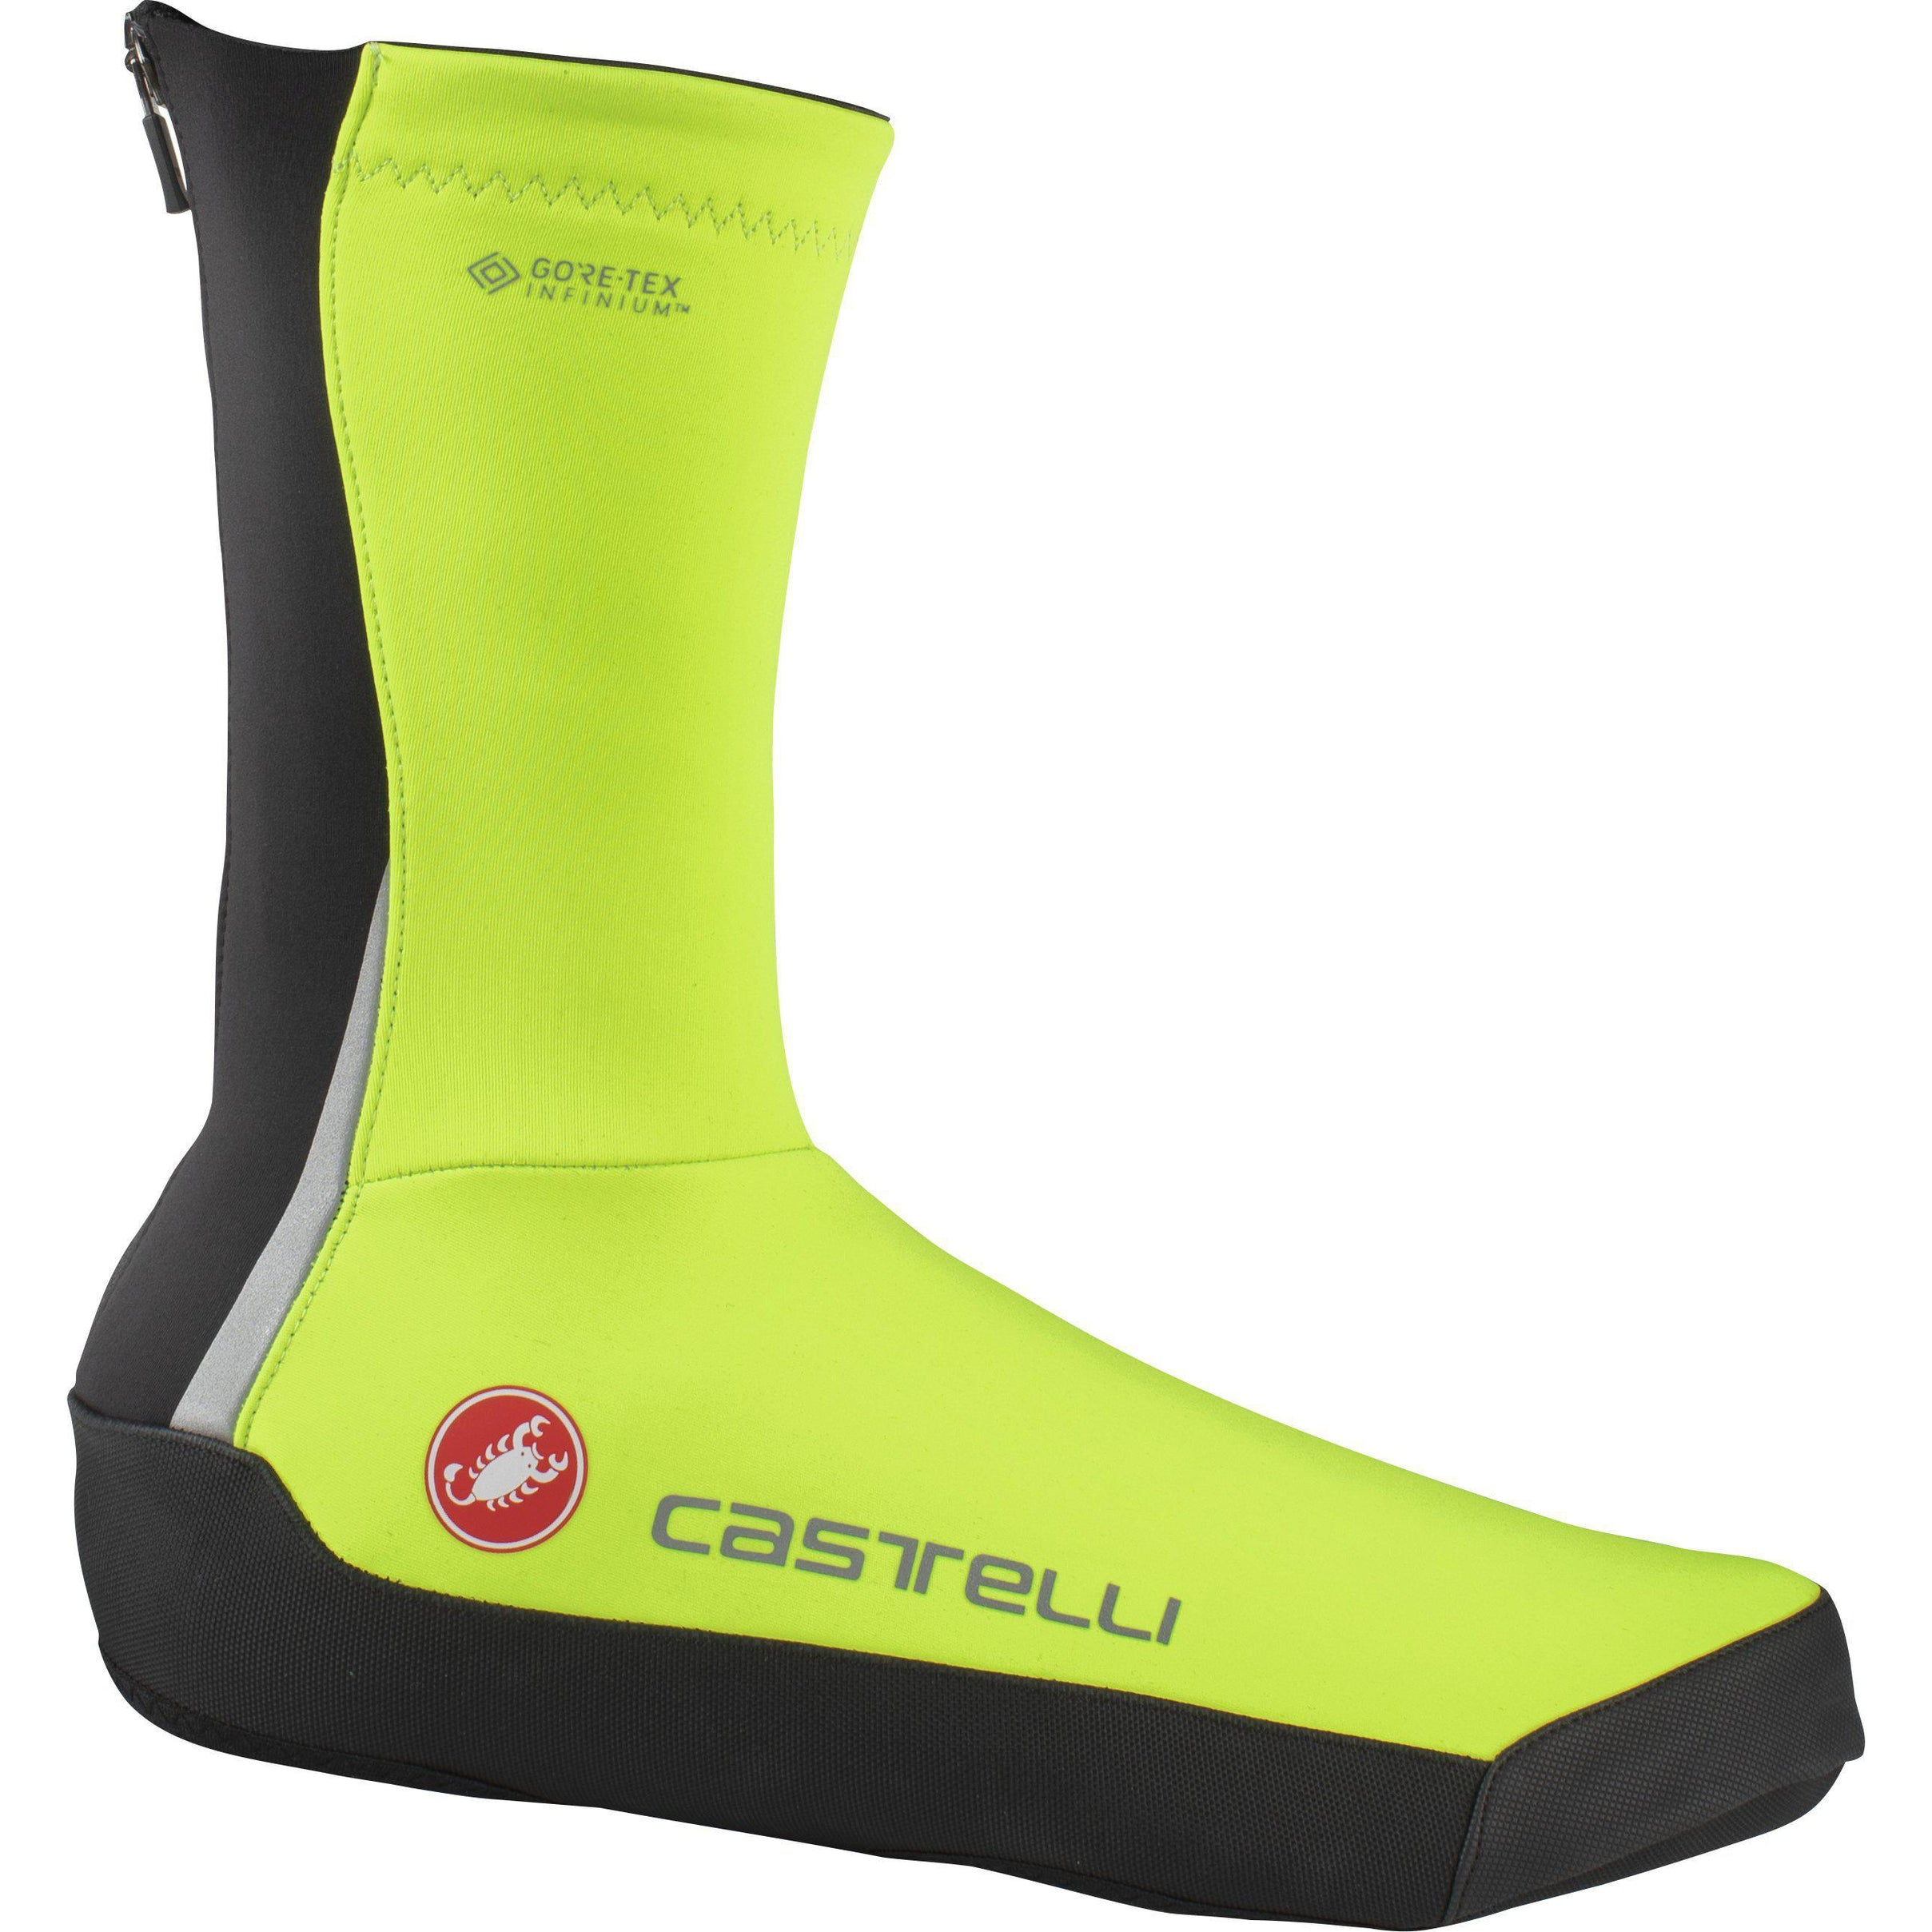 Castelli-Castelli Intenso UL Shoecover-Yellow Fluo-S-CS205380322-saddleback-elite-performance-cycling